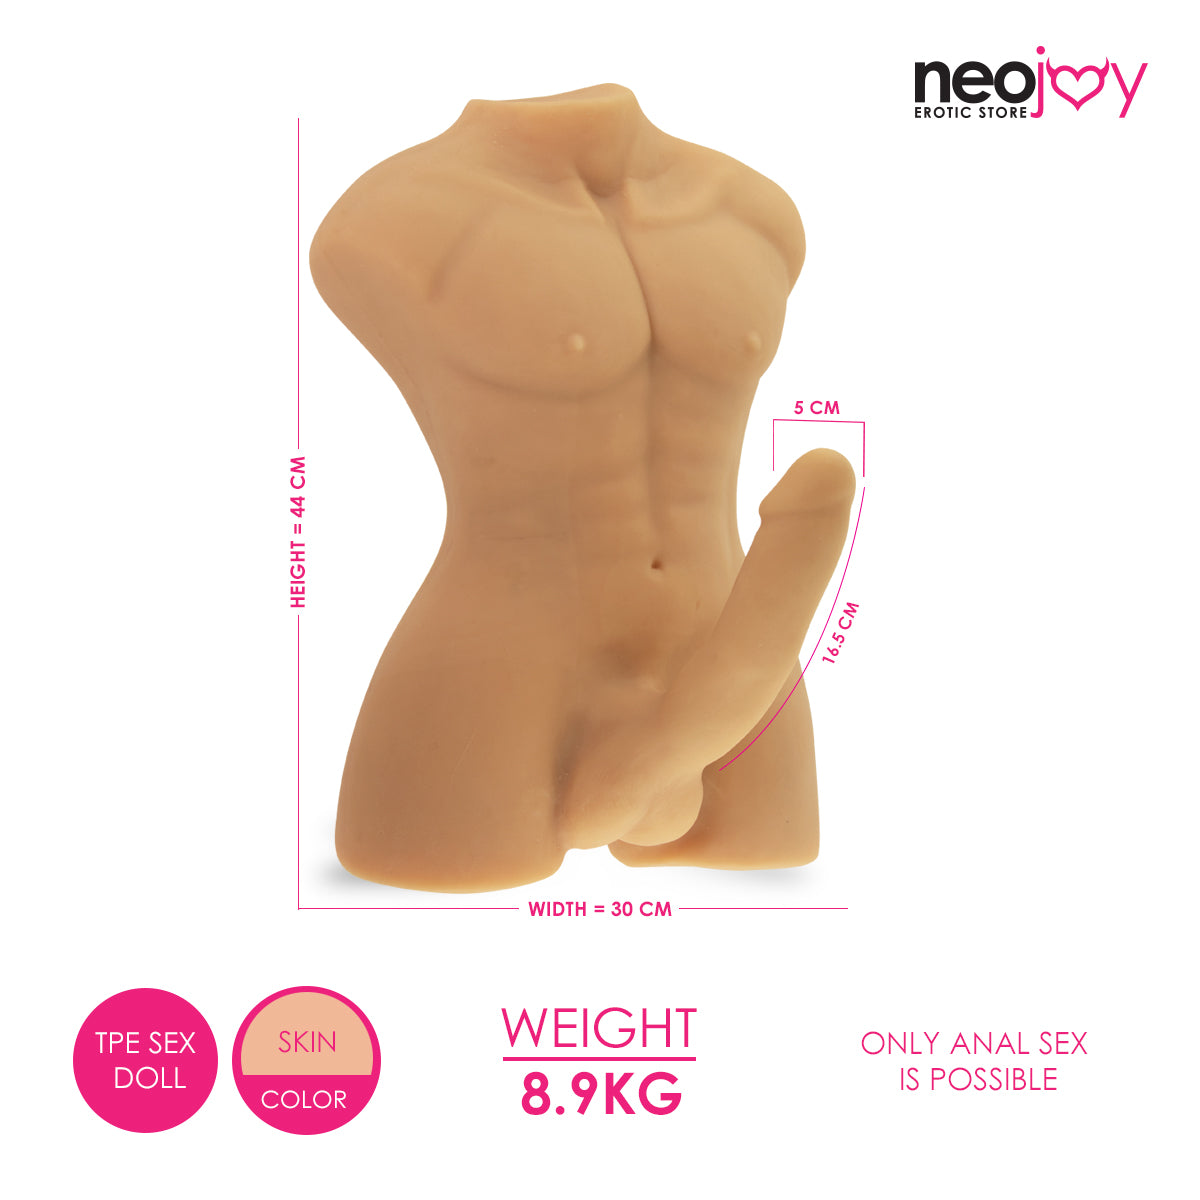 Neojoy Realistic Dildo Male Sex Doll TPE - Flesh 8.9KG 4